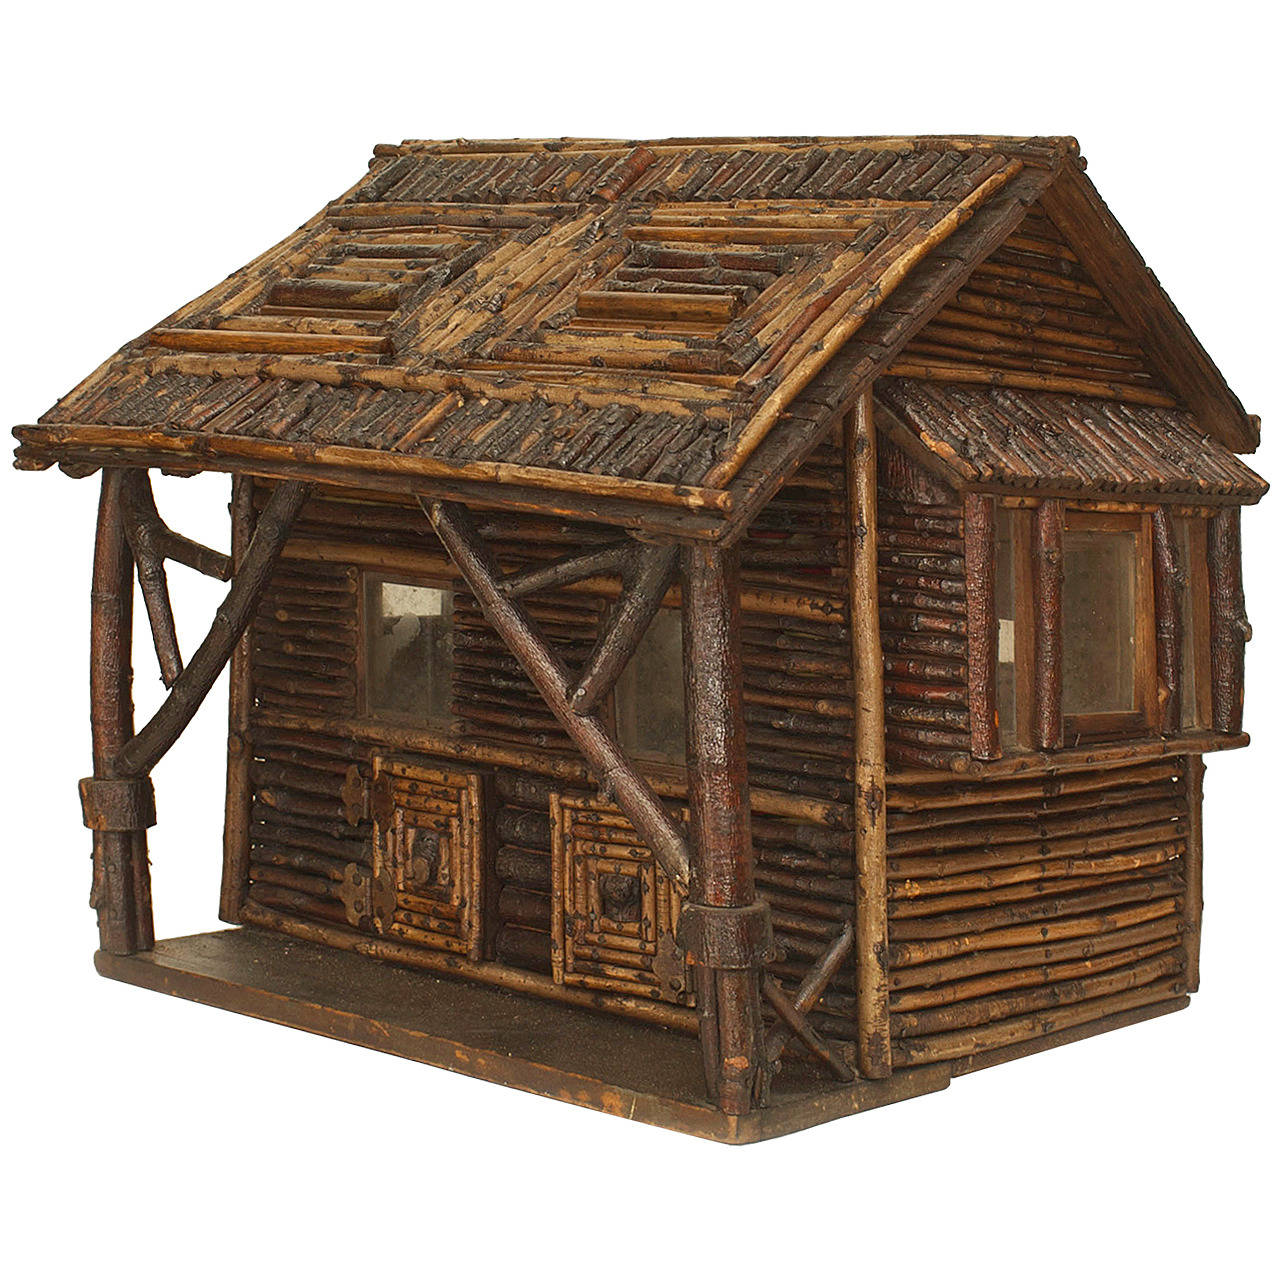 Marvelous photograph of Early 20th c. American Rustic Miniature Log Cabin at 1stdibs with #90673B color and 1280x1280 pixels